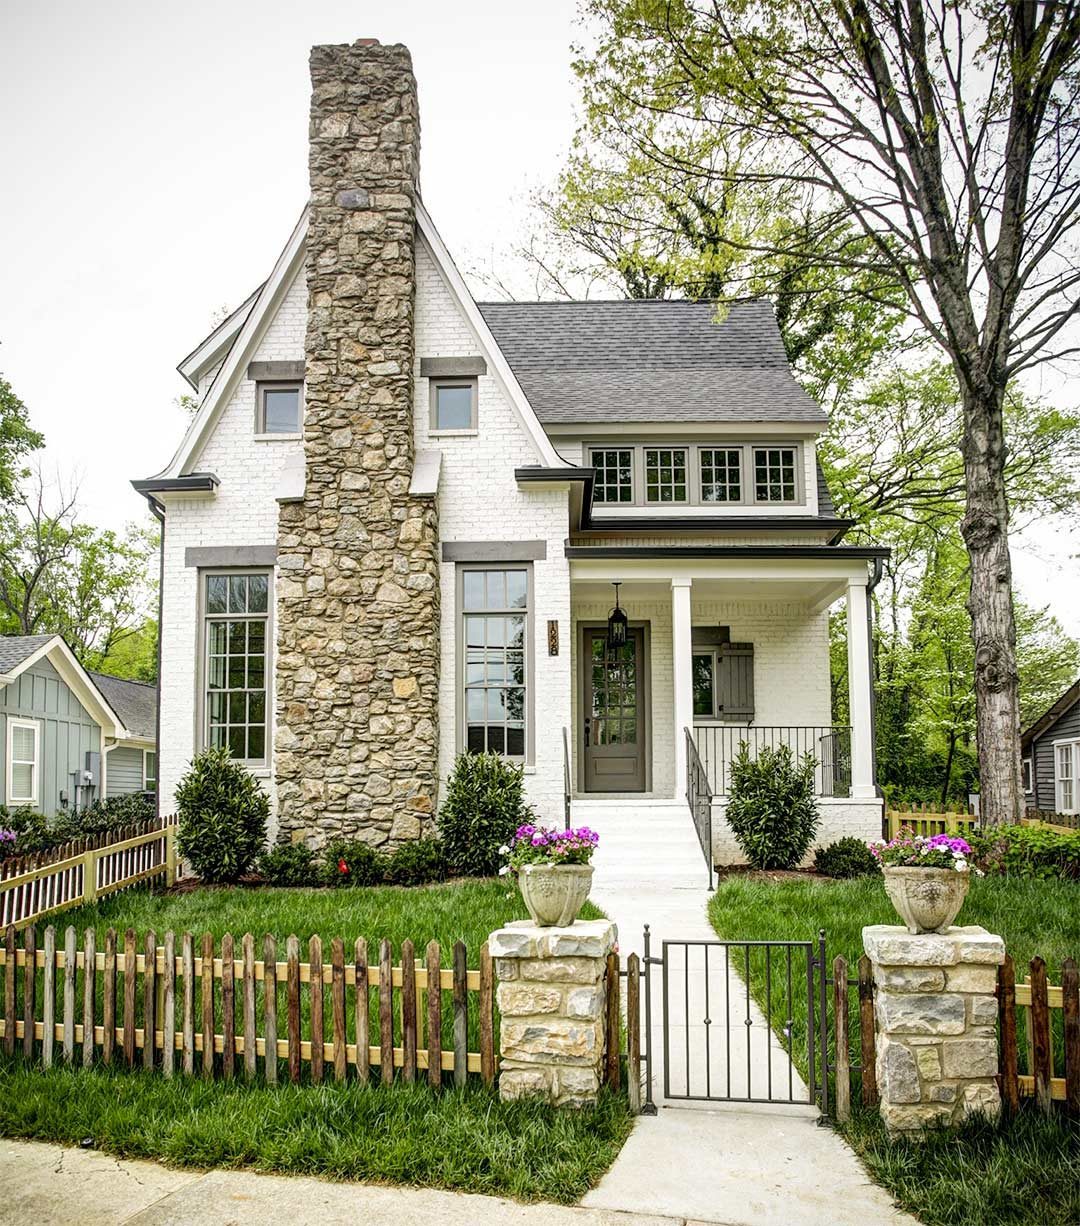 Why We Chose Sherwin Williams White Duck For Our Exterior